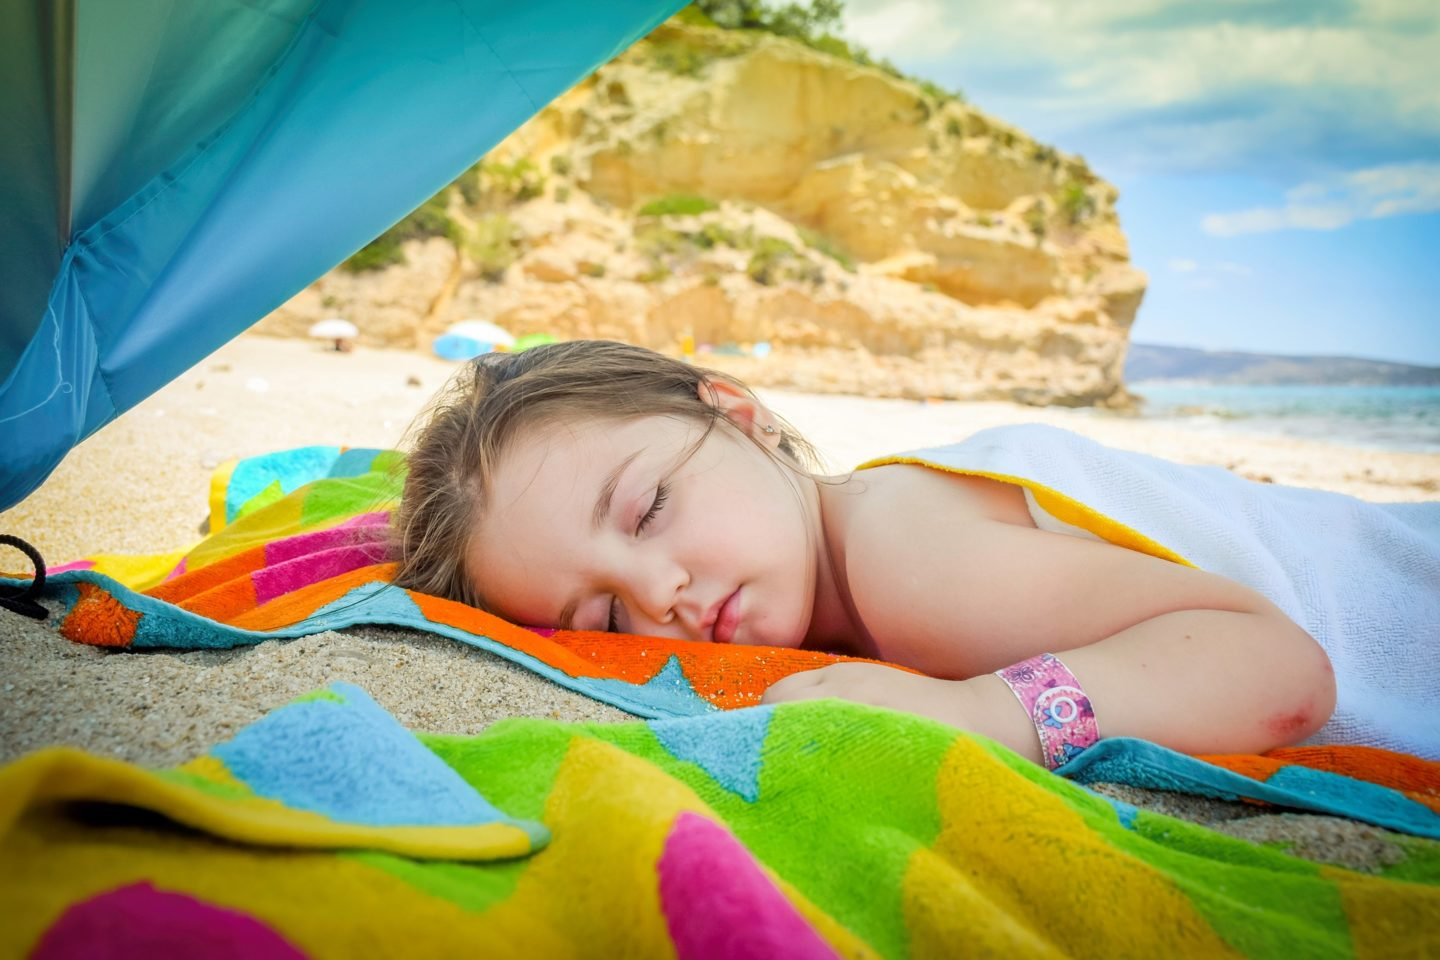 Top Tips To Keep Kids Safe In The Sun